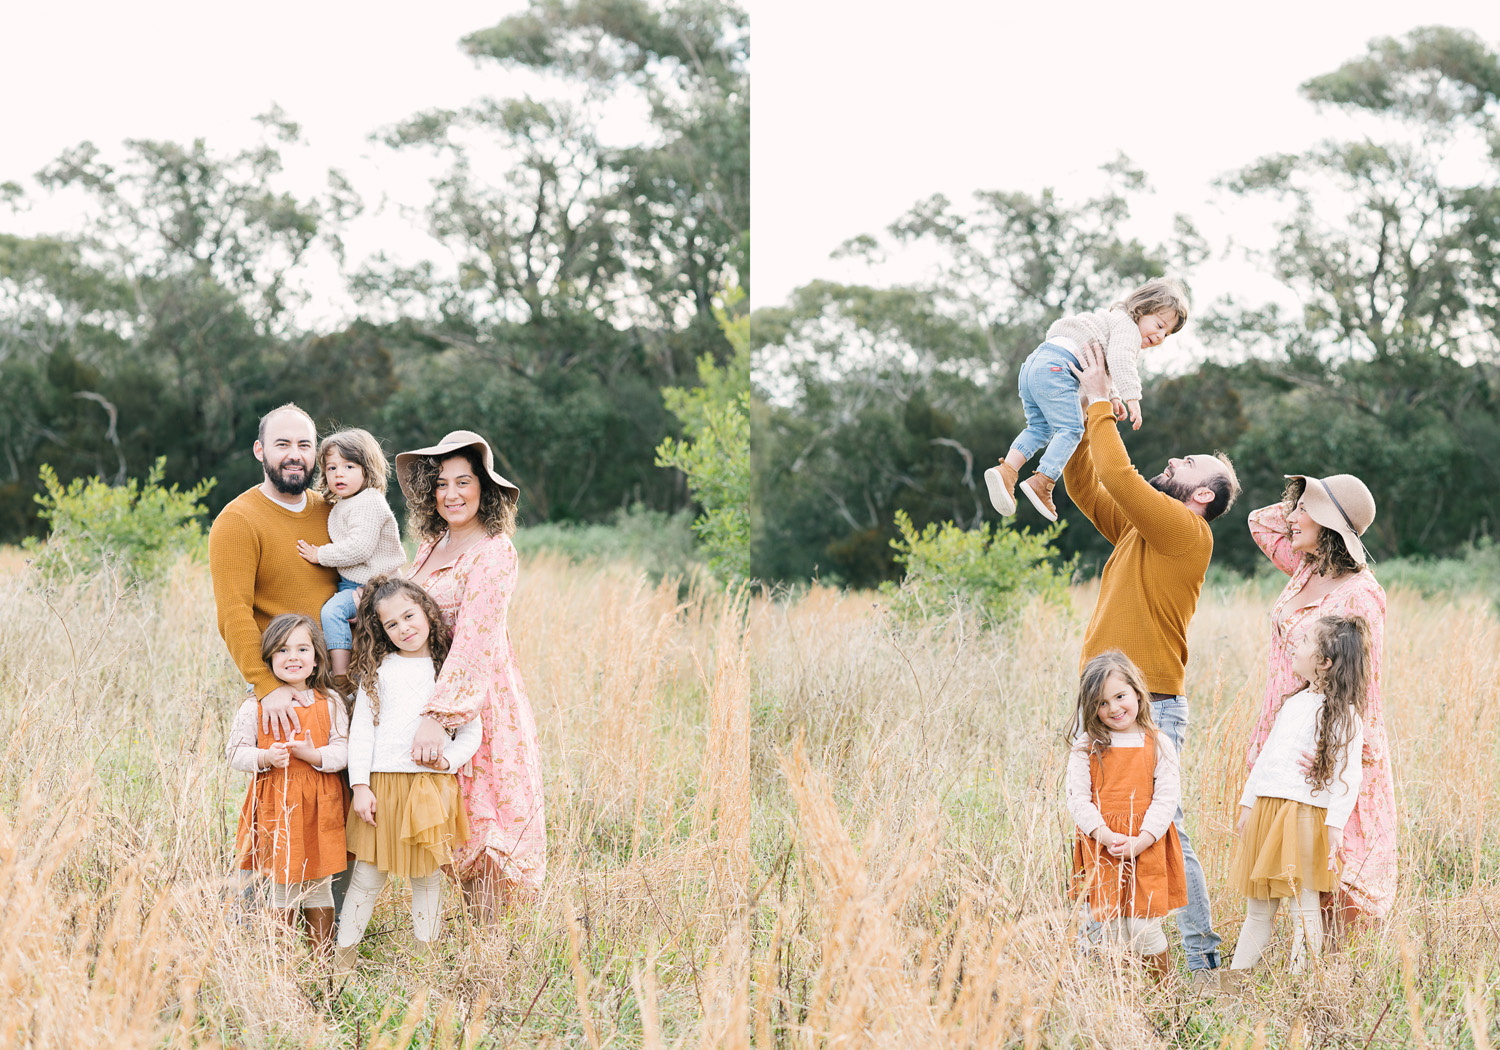 Two images side by side. First image of family of five standing in field of long grass smiling to camera, second image of family of five with dad throwing toddler up in air playfully, as photographed by Sutherland Shire Family Photographer Sevenish Photography